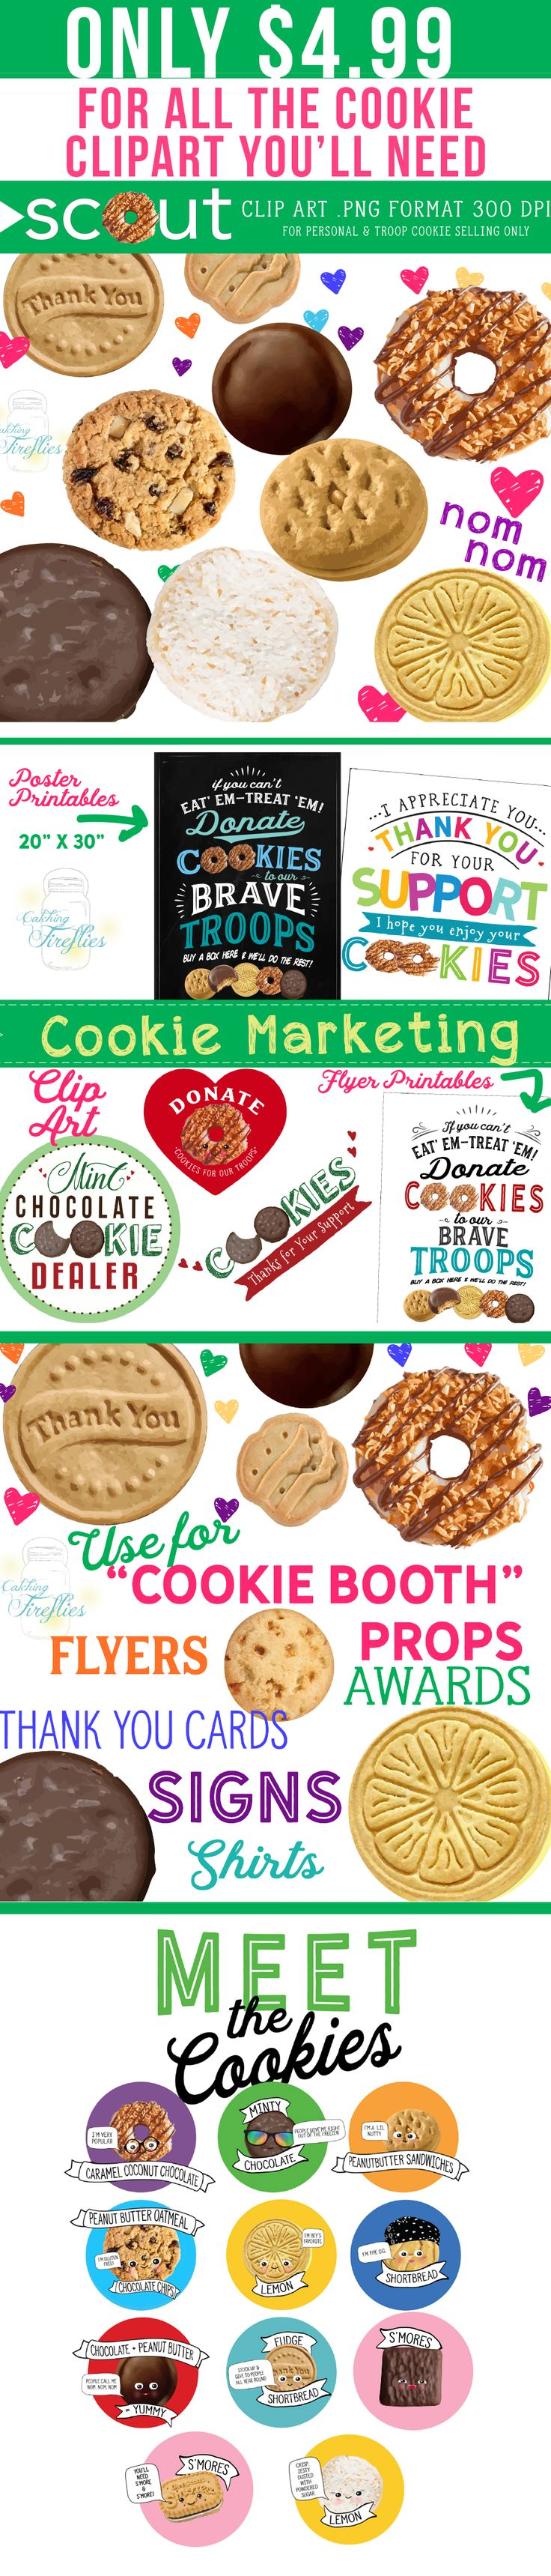 Girl Scout Cookie Clip Art for the Cutest Booth in Town. Clip Art and Marketing Material   #girlscouts,#girlscoutcookies,#boothdisplay,#booth